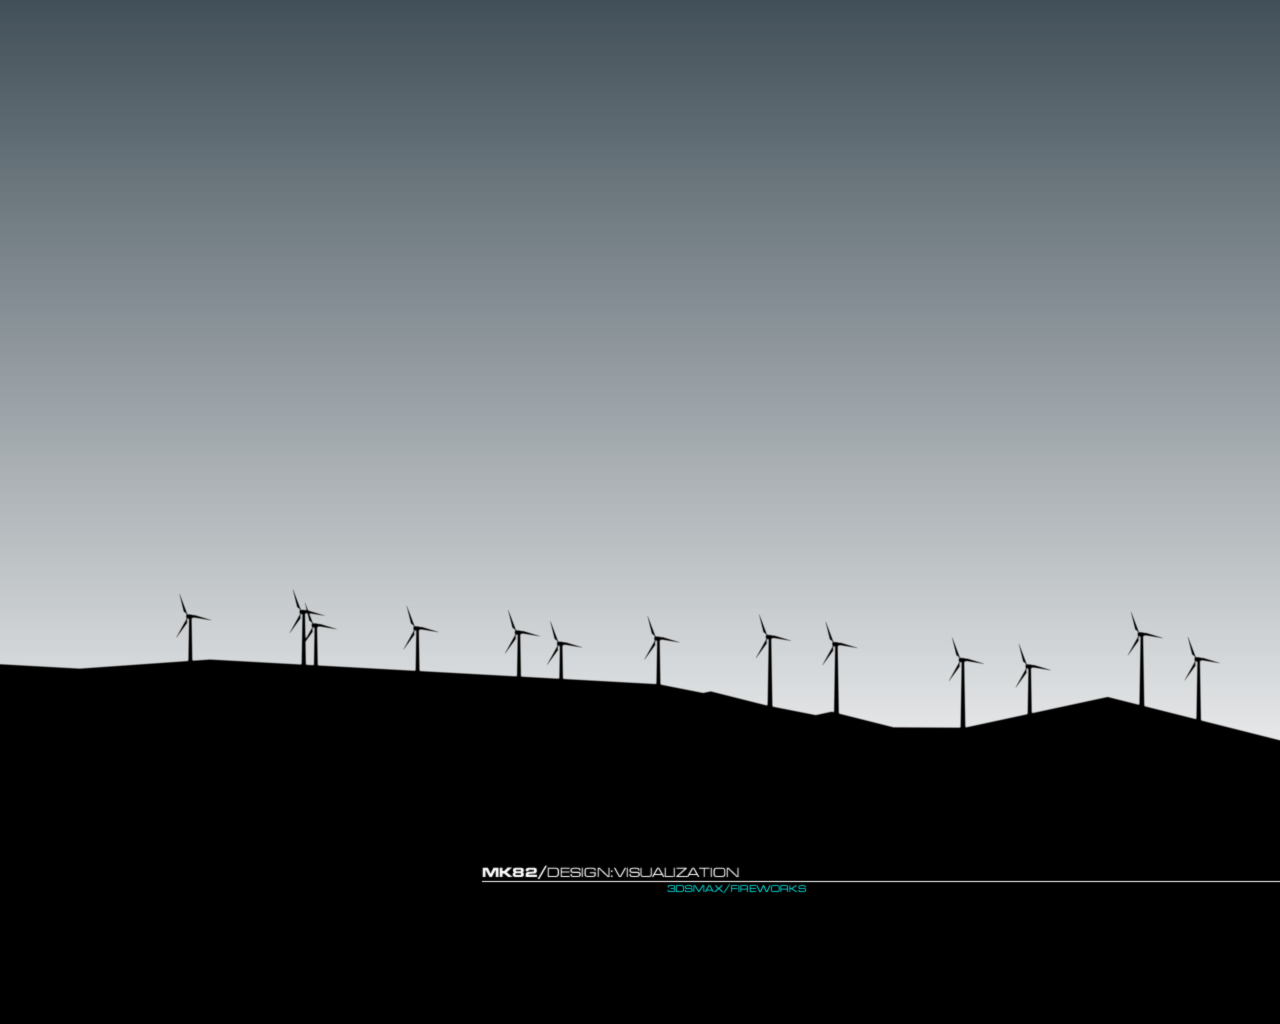 wind farm silhouette by HD Wallpaper